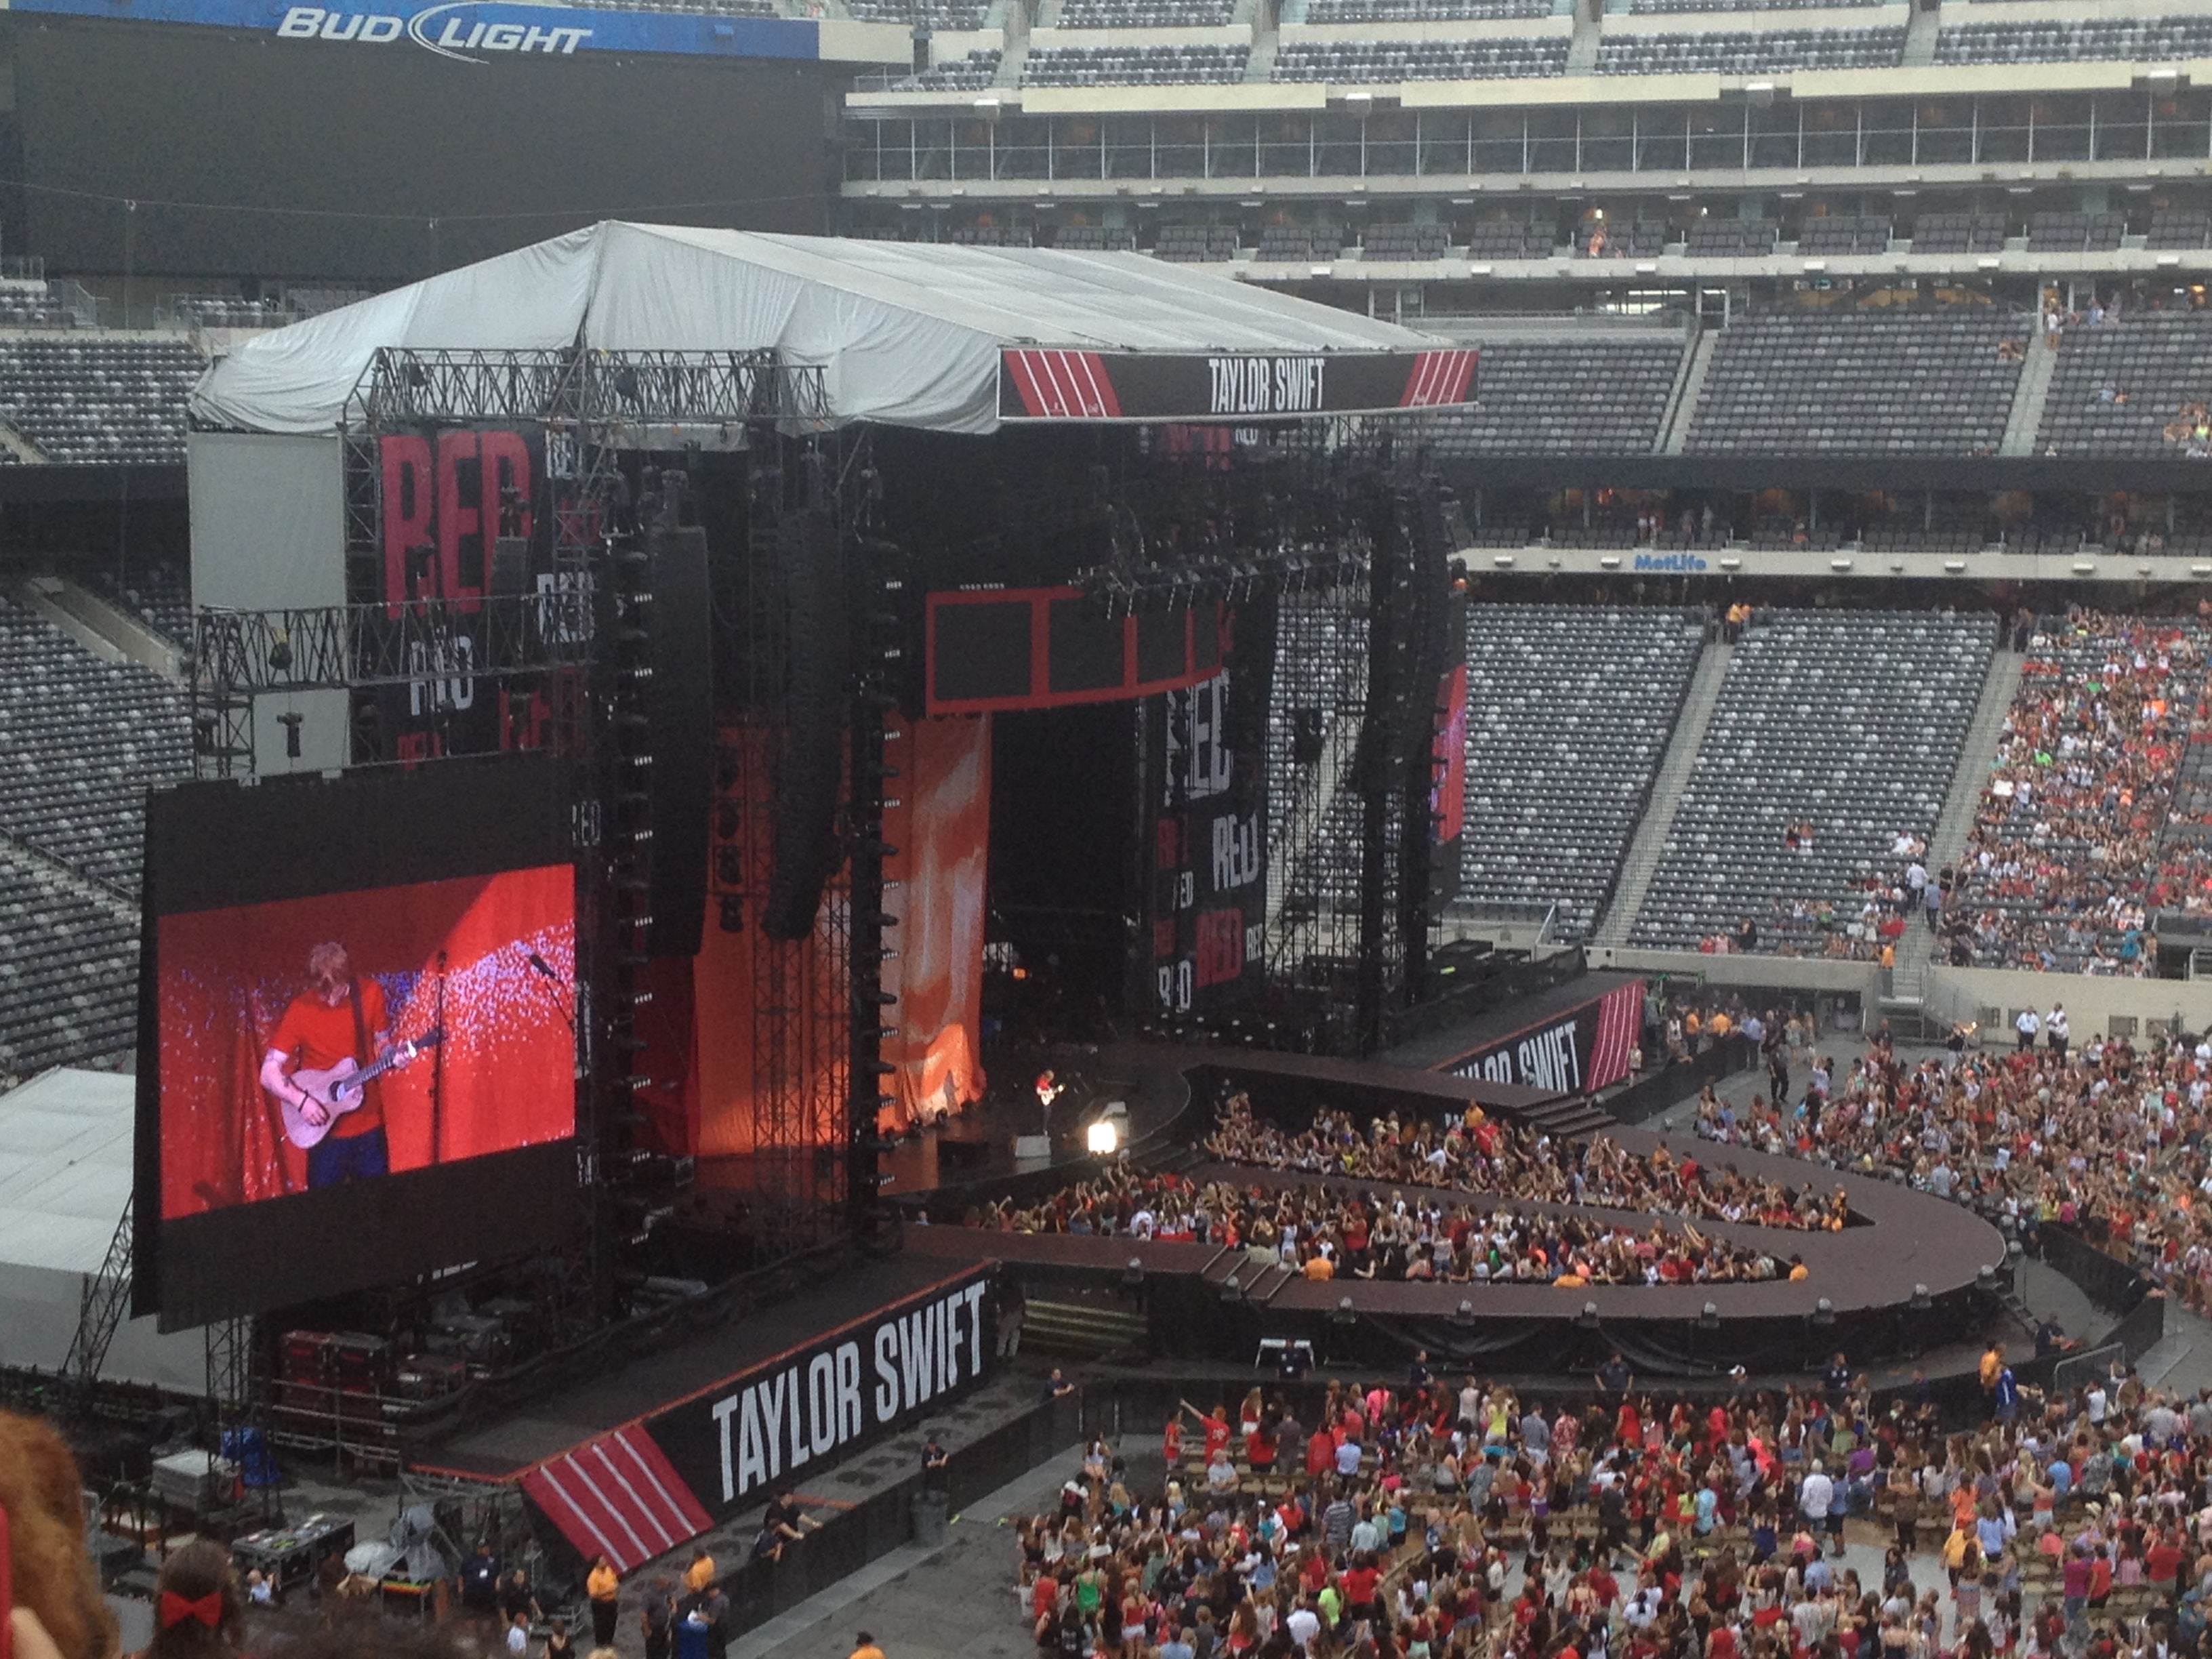 Red Tour Opening Acts